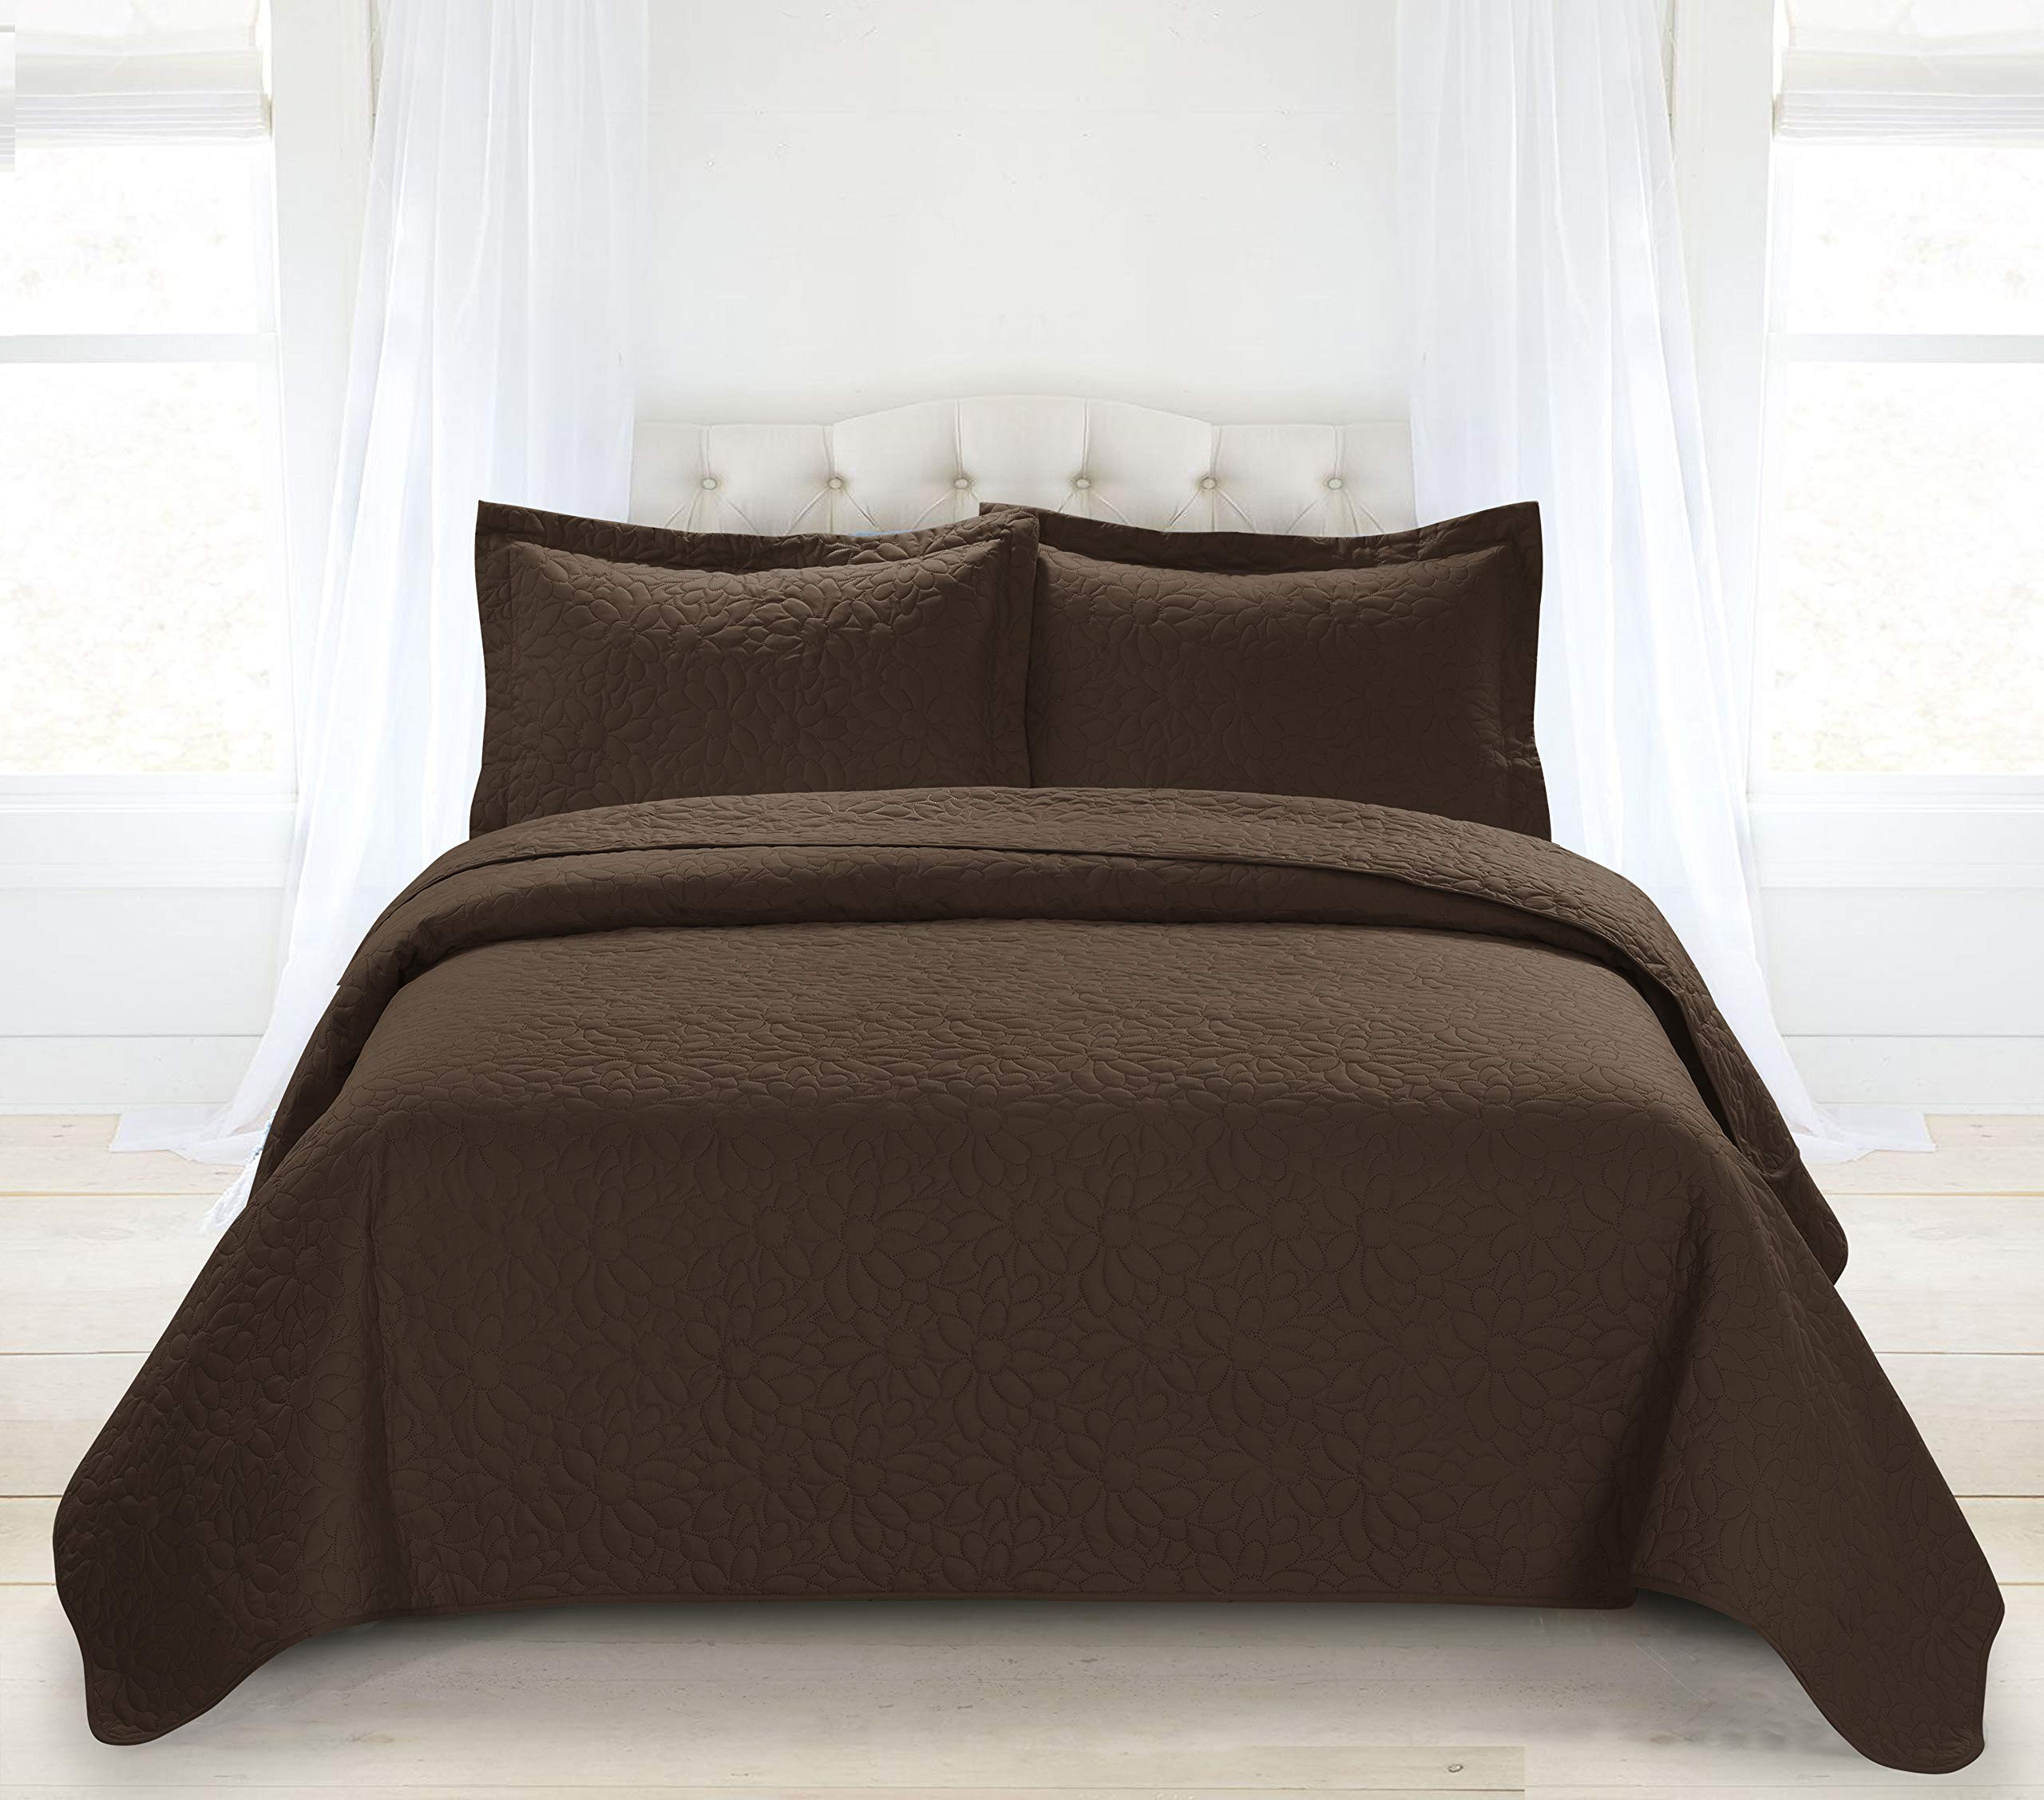 HIG 3 Piece TINOS Ultrasonic Embossed Bedspread Set-Oversized Coverlet 100x106in, 118x106in (Queen, Chocolate)